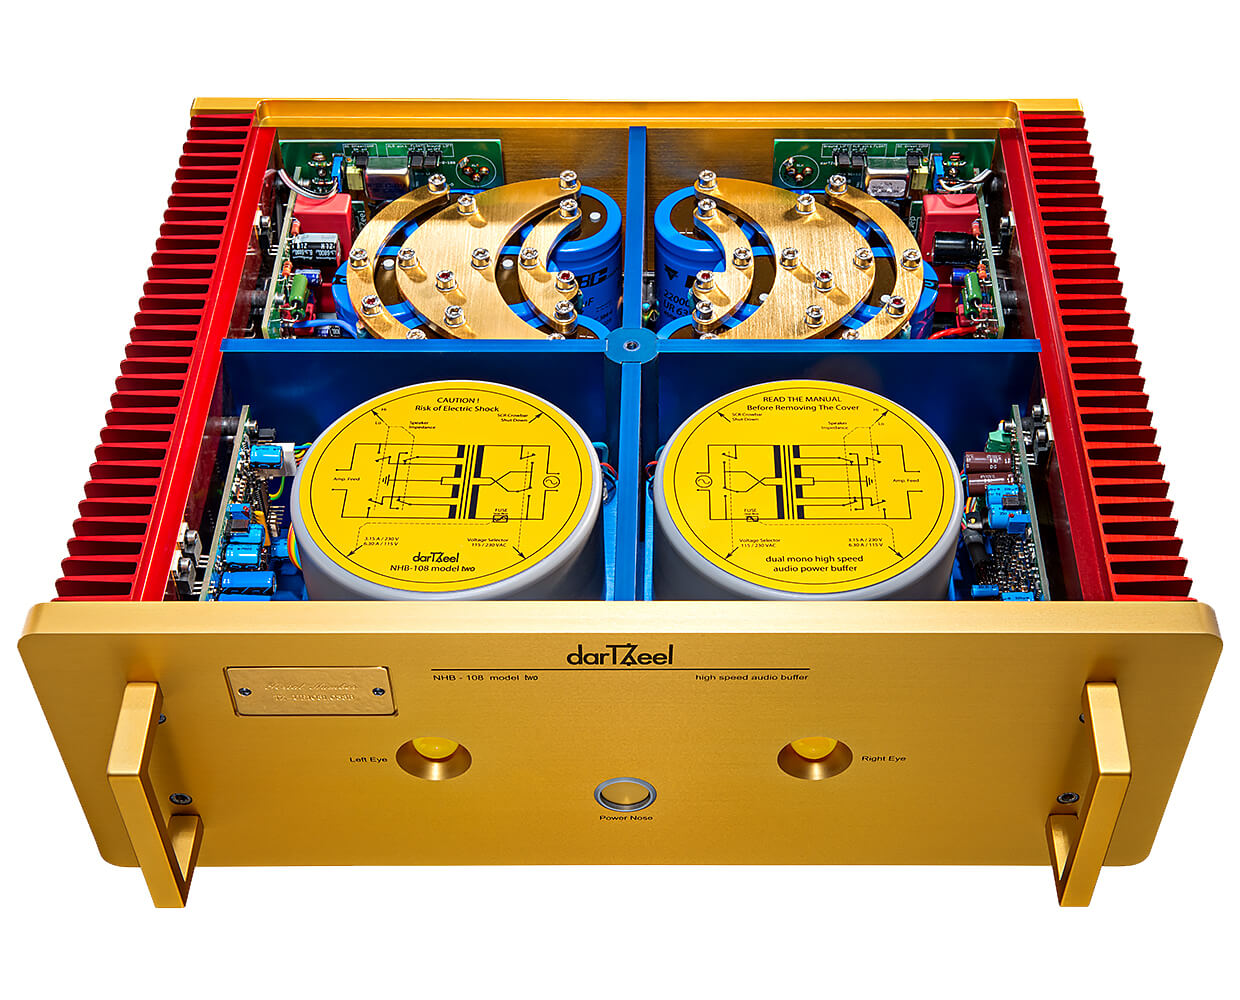 Nhb 108 Model 2 Often Envied Never Equaled Dartzeel Audio Sa Circuit With Voice Over Capability Power Output Of 150 Watts Per Channel And Its Circuits Patented Worldwide That Prevent Global Negative Feedback The Two Connects